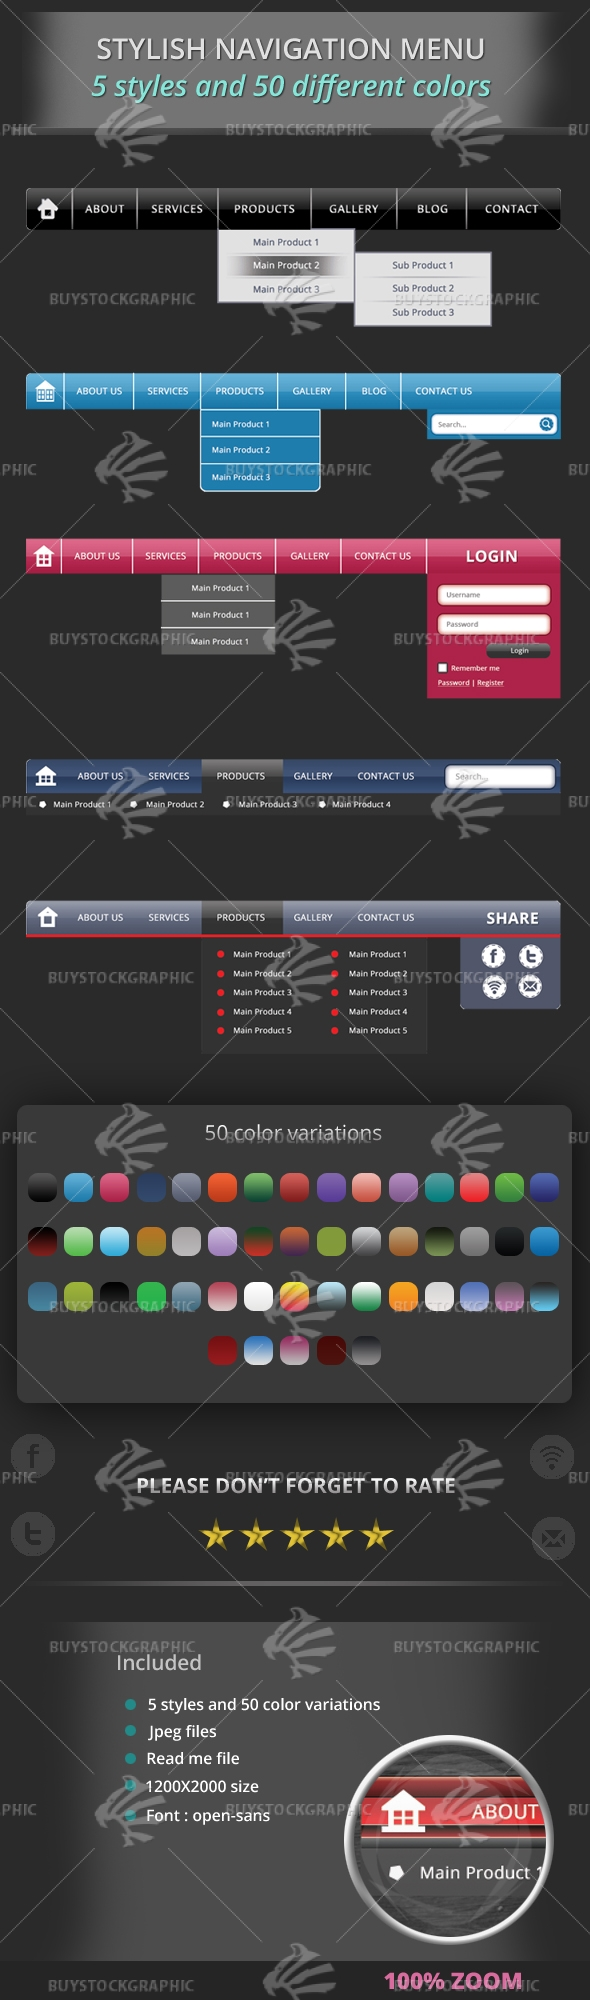 5 Stylish Navigation Menu with 50 Color Variations